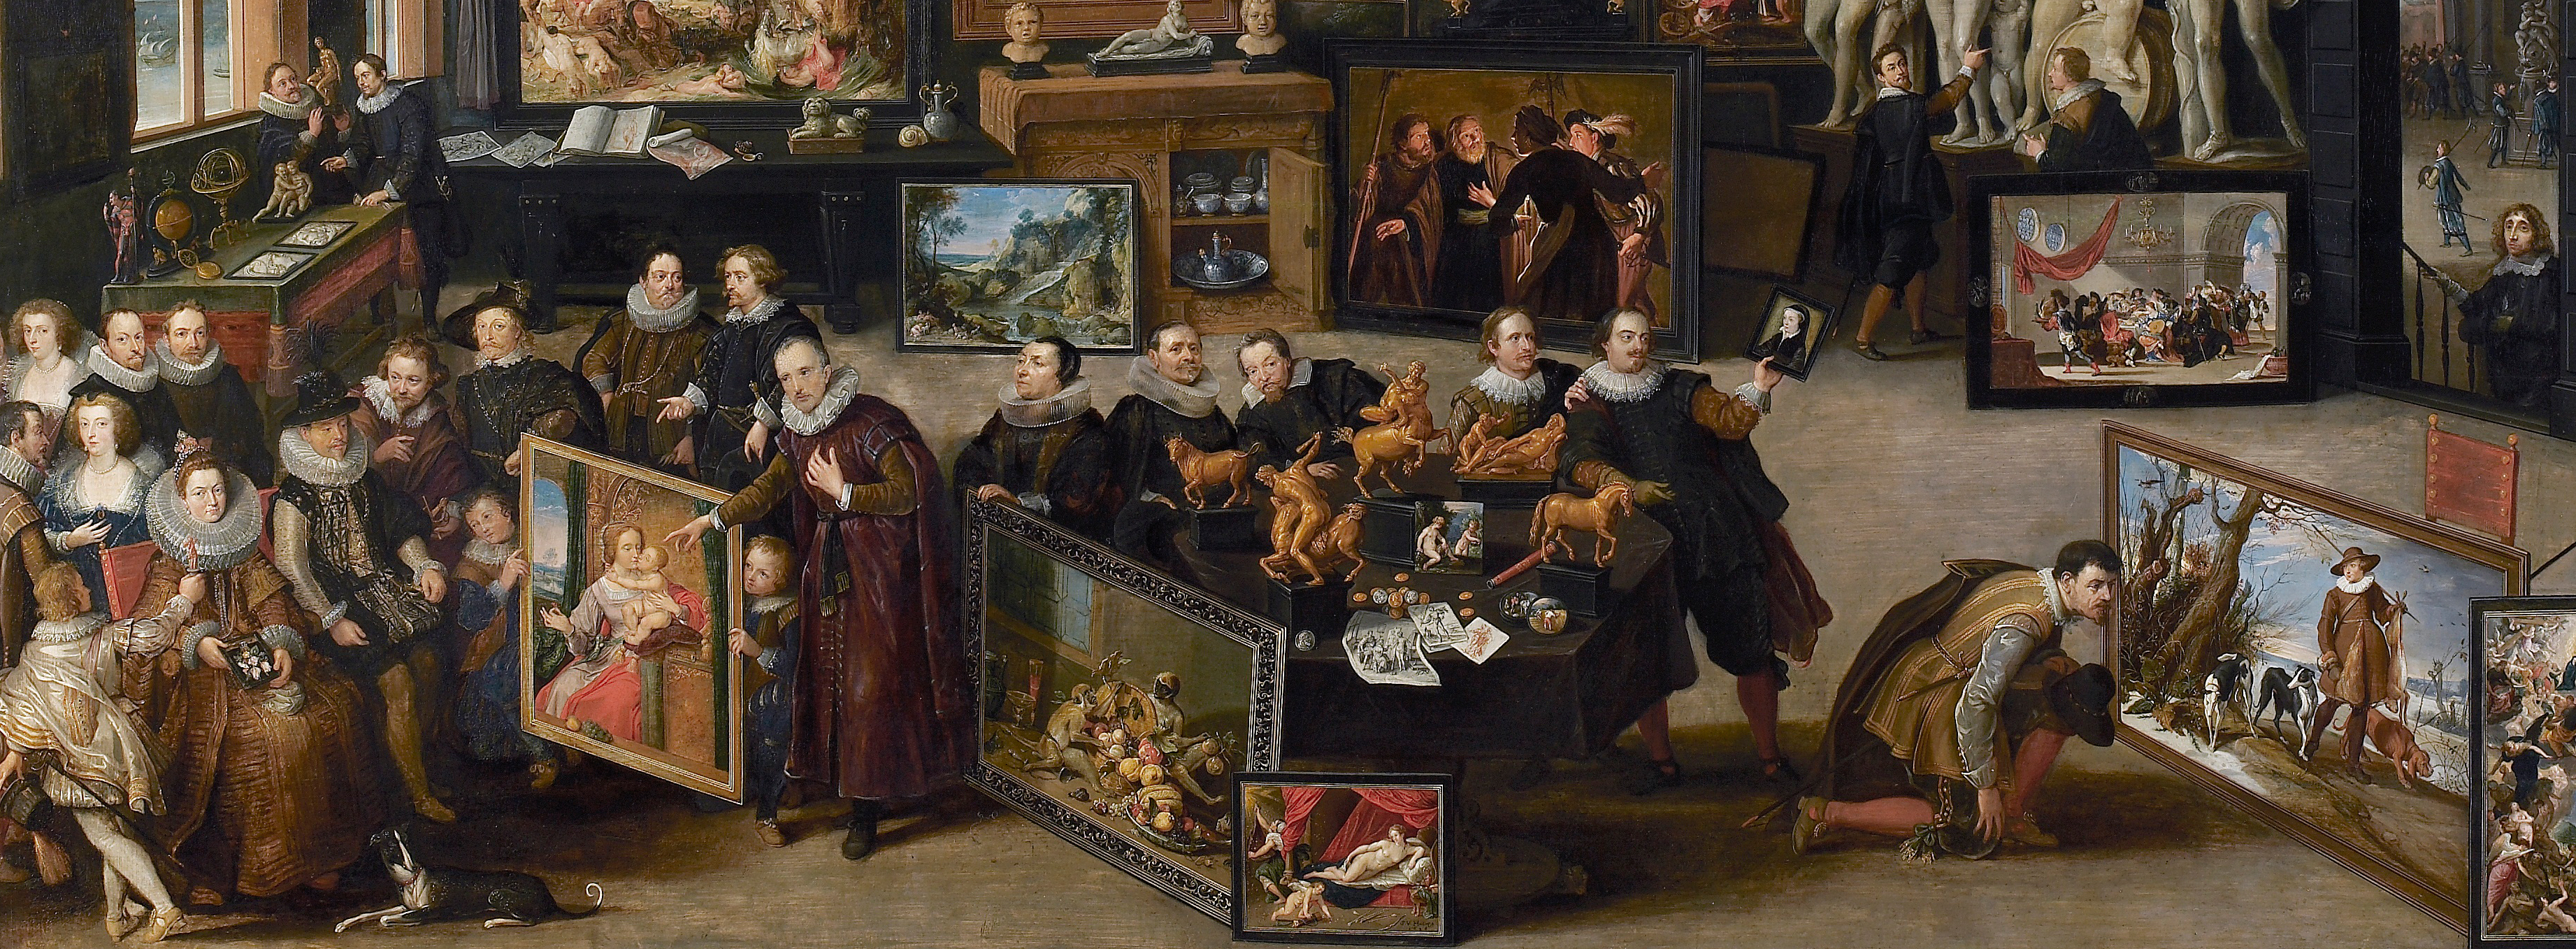 Willem van Haecht I, The gallery of Cornelis van der Geest (detail), The Rubens House.